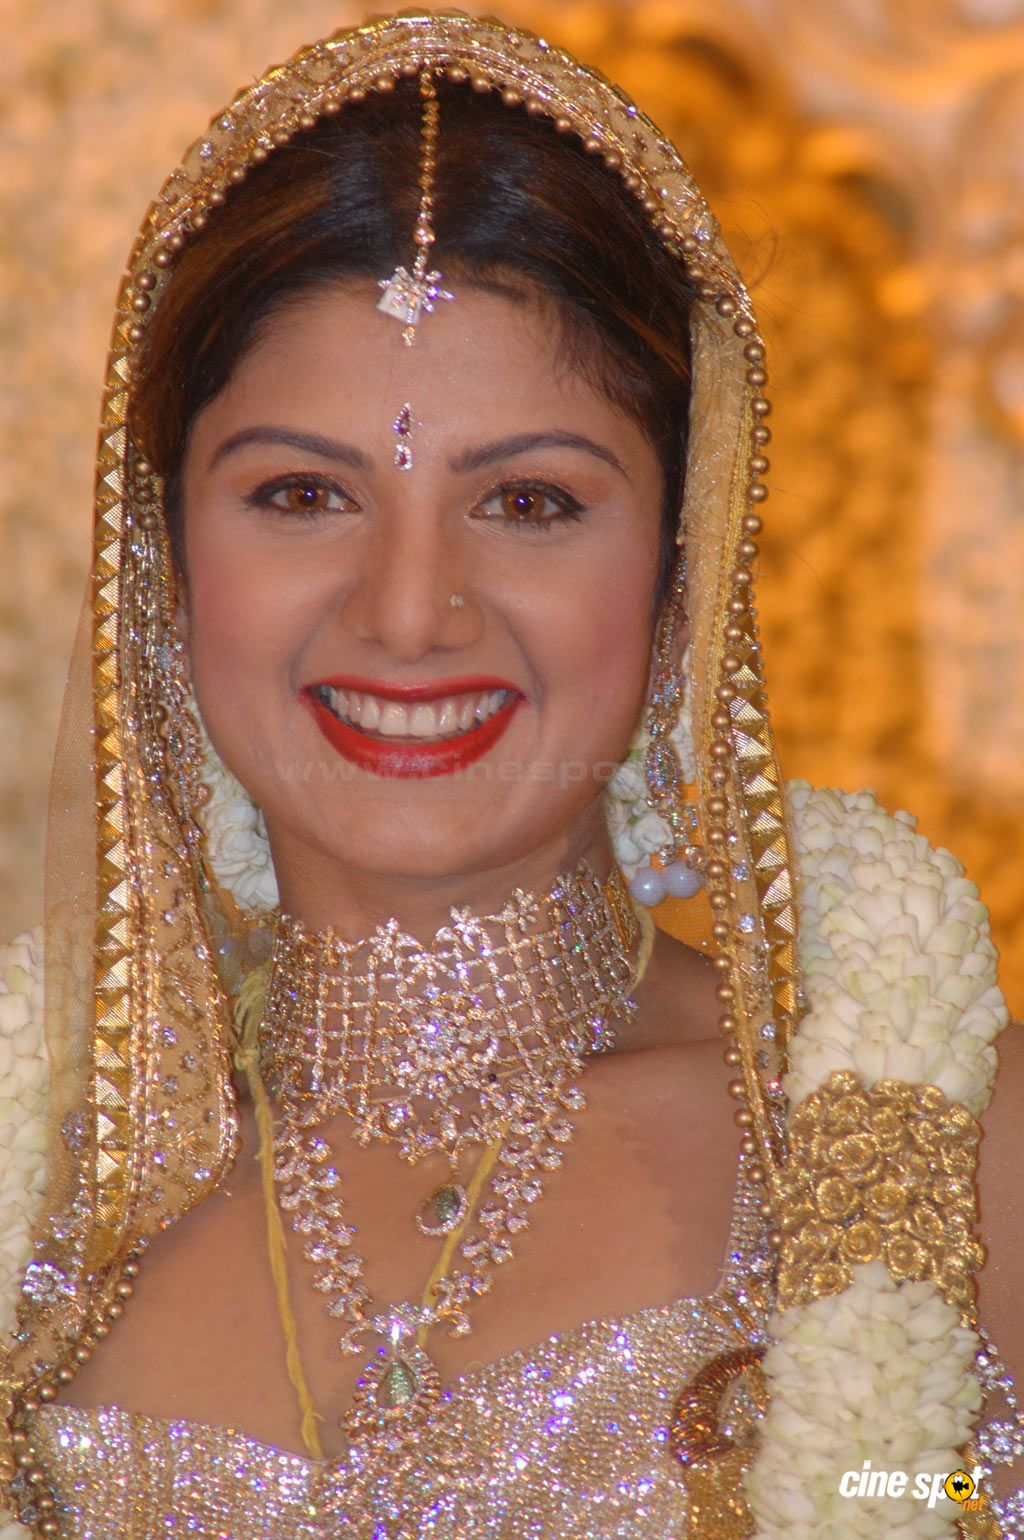 actress ramyarambha wikipedia, rambha meaning, rambha judwaa, rambha hot photos, rambha actress wiki, rambha hot images, rambha hot videos, rambha photos, rambha apsara, rambha daughter, rambha wiki, rambha husband, hot ramya, rambha facebook, rambha movies, actress ramya